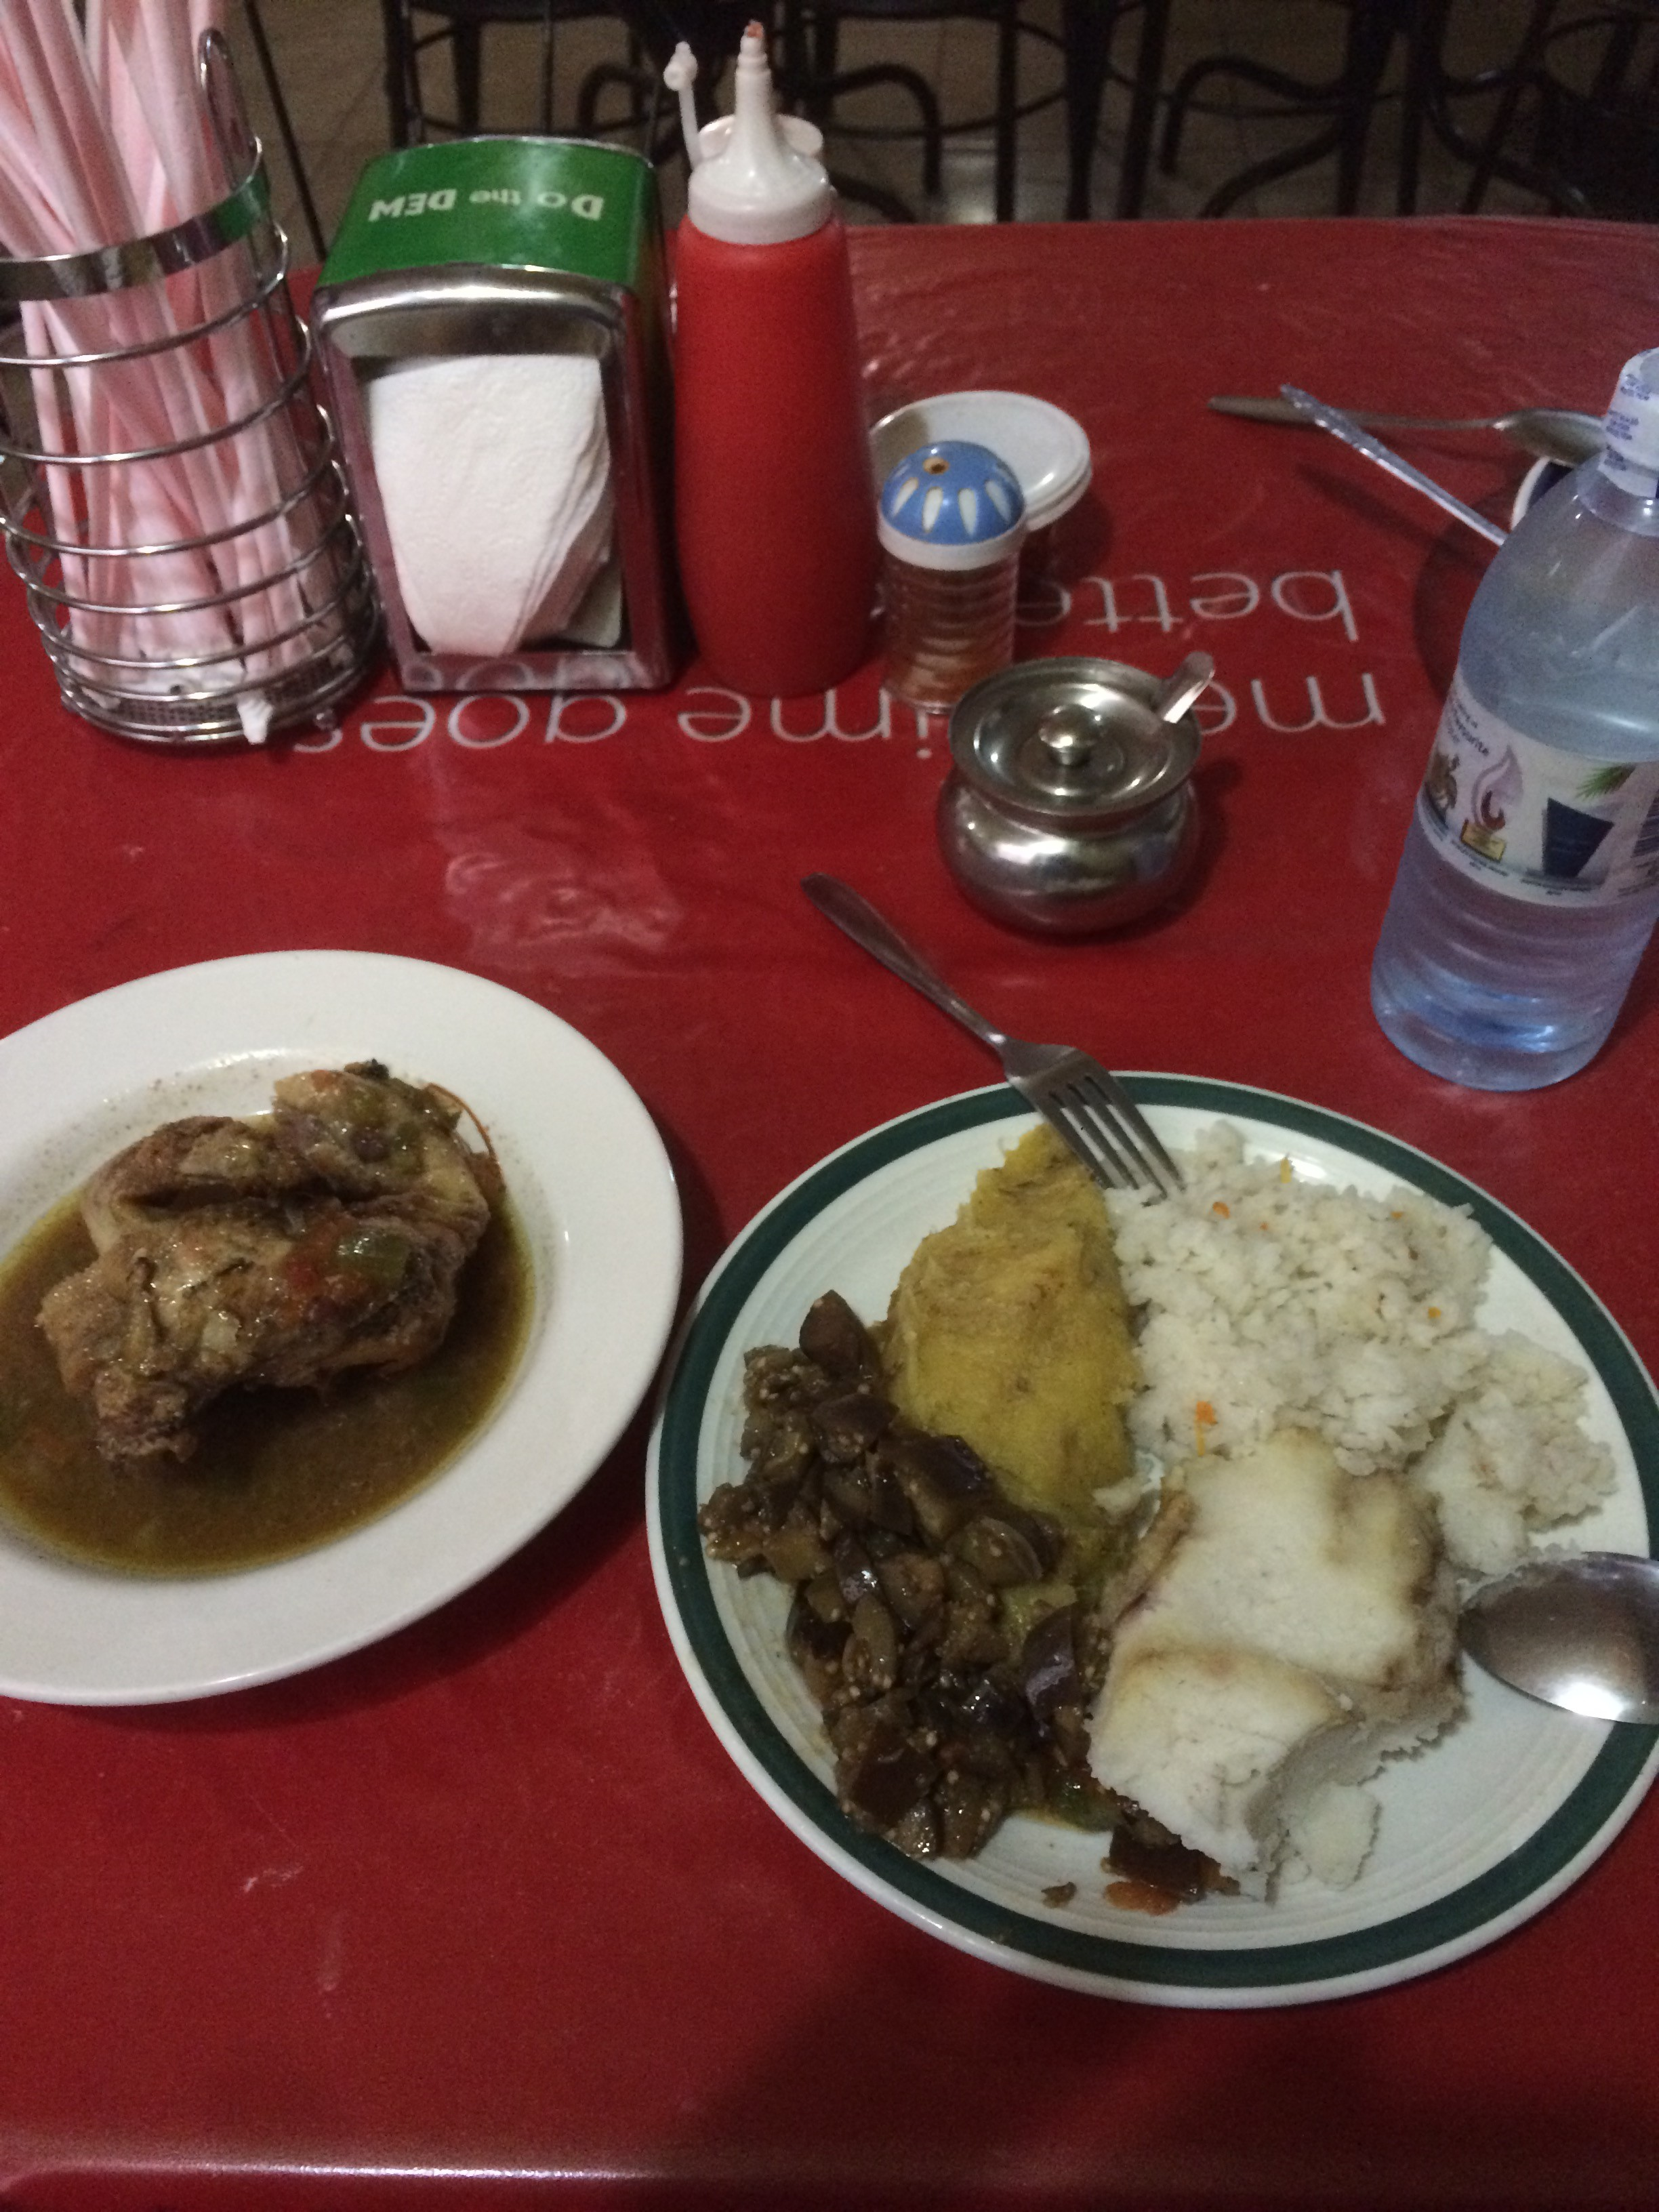 My first Ugandan meal: beef, matooke (cooked bananas, different from the sweet), rice, eggplants and semolina